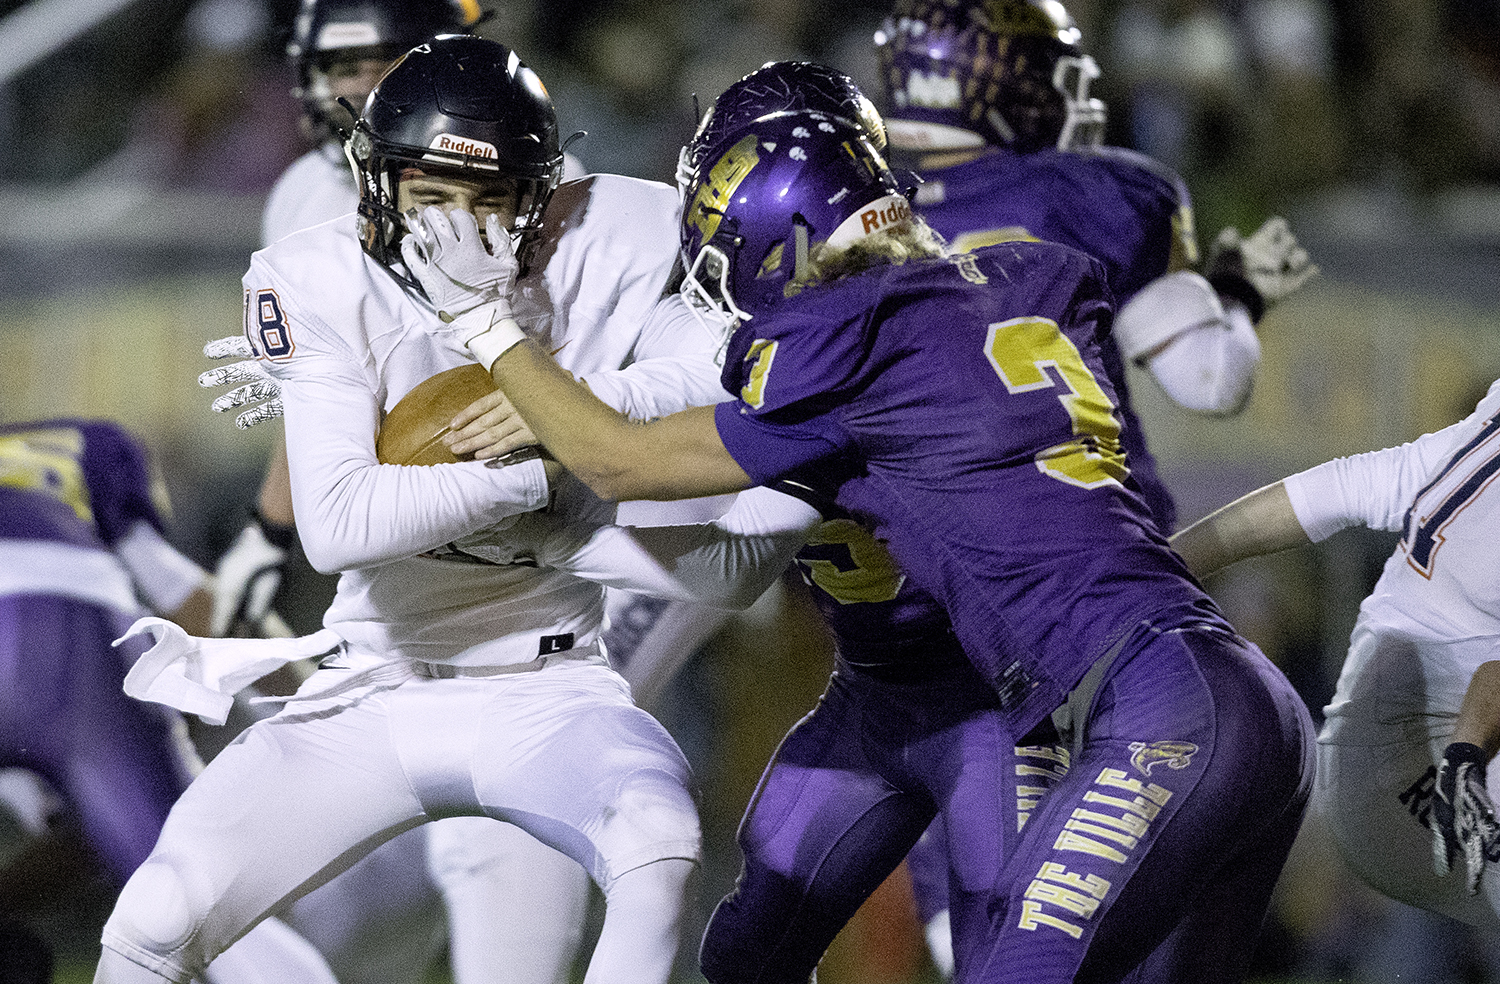 Taylorville's Will Kettelkamp grabs the facemask of Rochester's Clay Bruno as he rushes for the endzone during the Class 4A quarterfinals in Taylorville Saturday, Nov. 10, 2018. [Ted Schurter/The State Journal-Register]